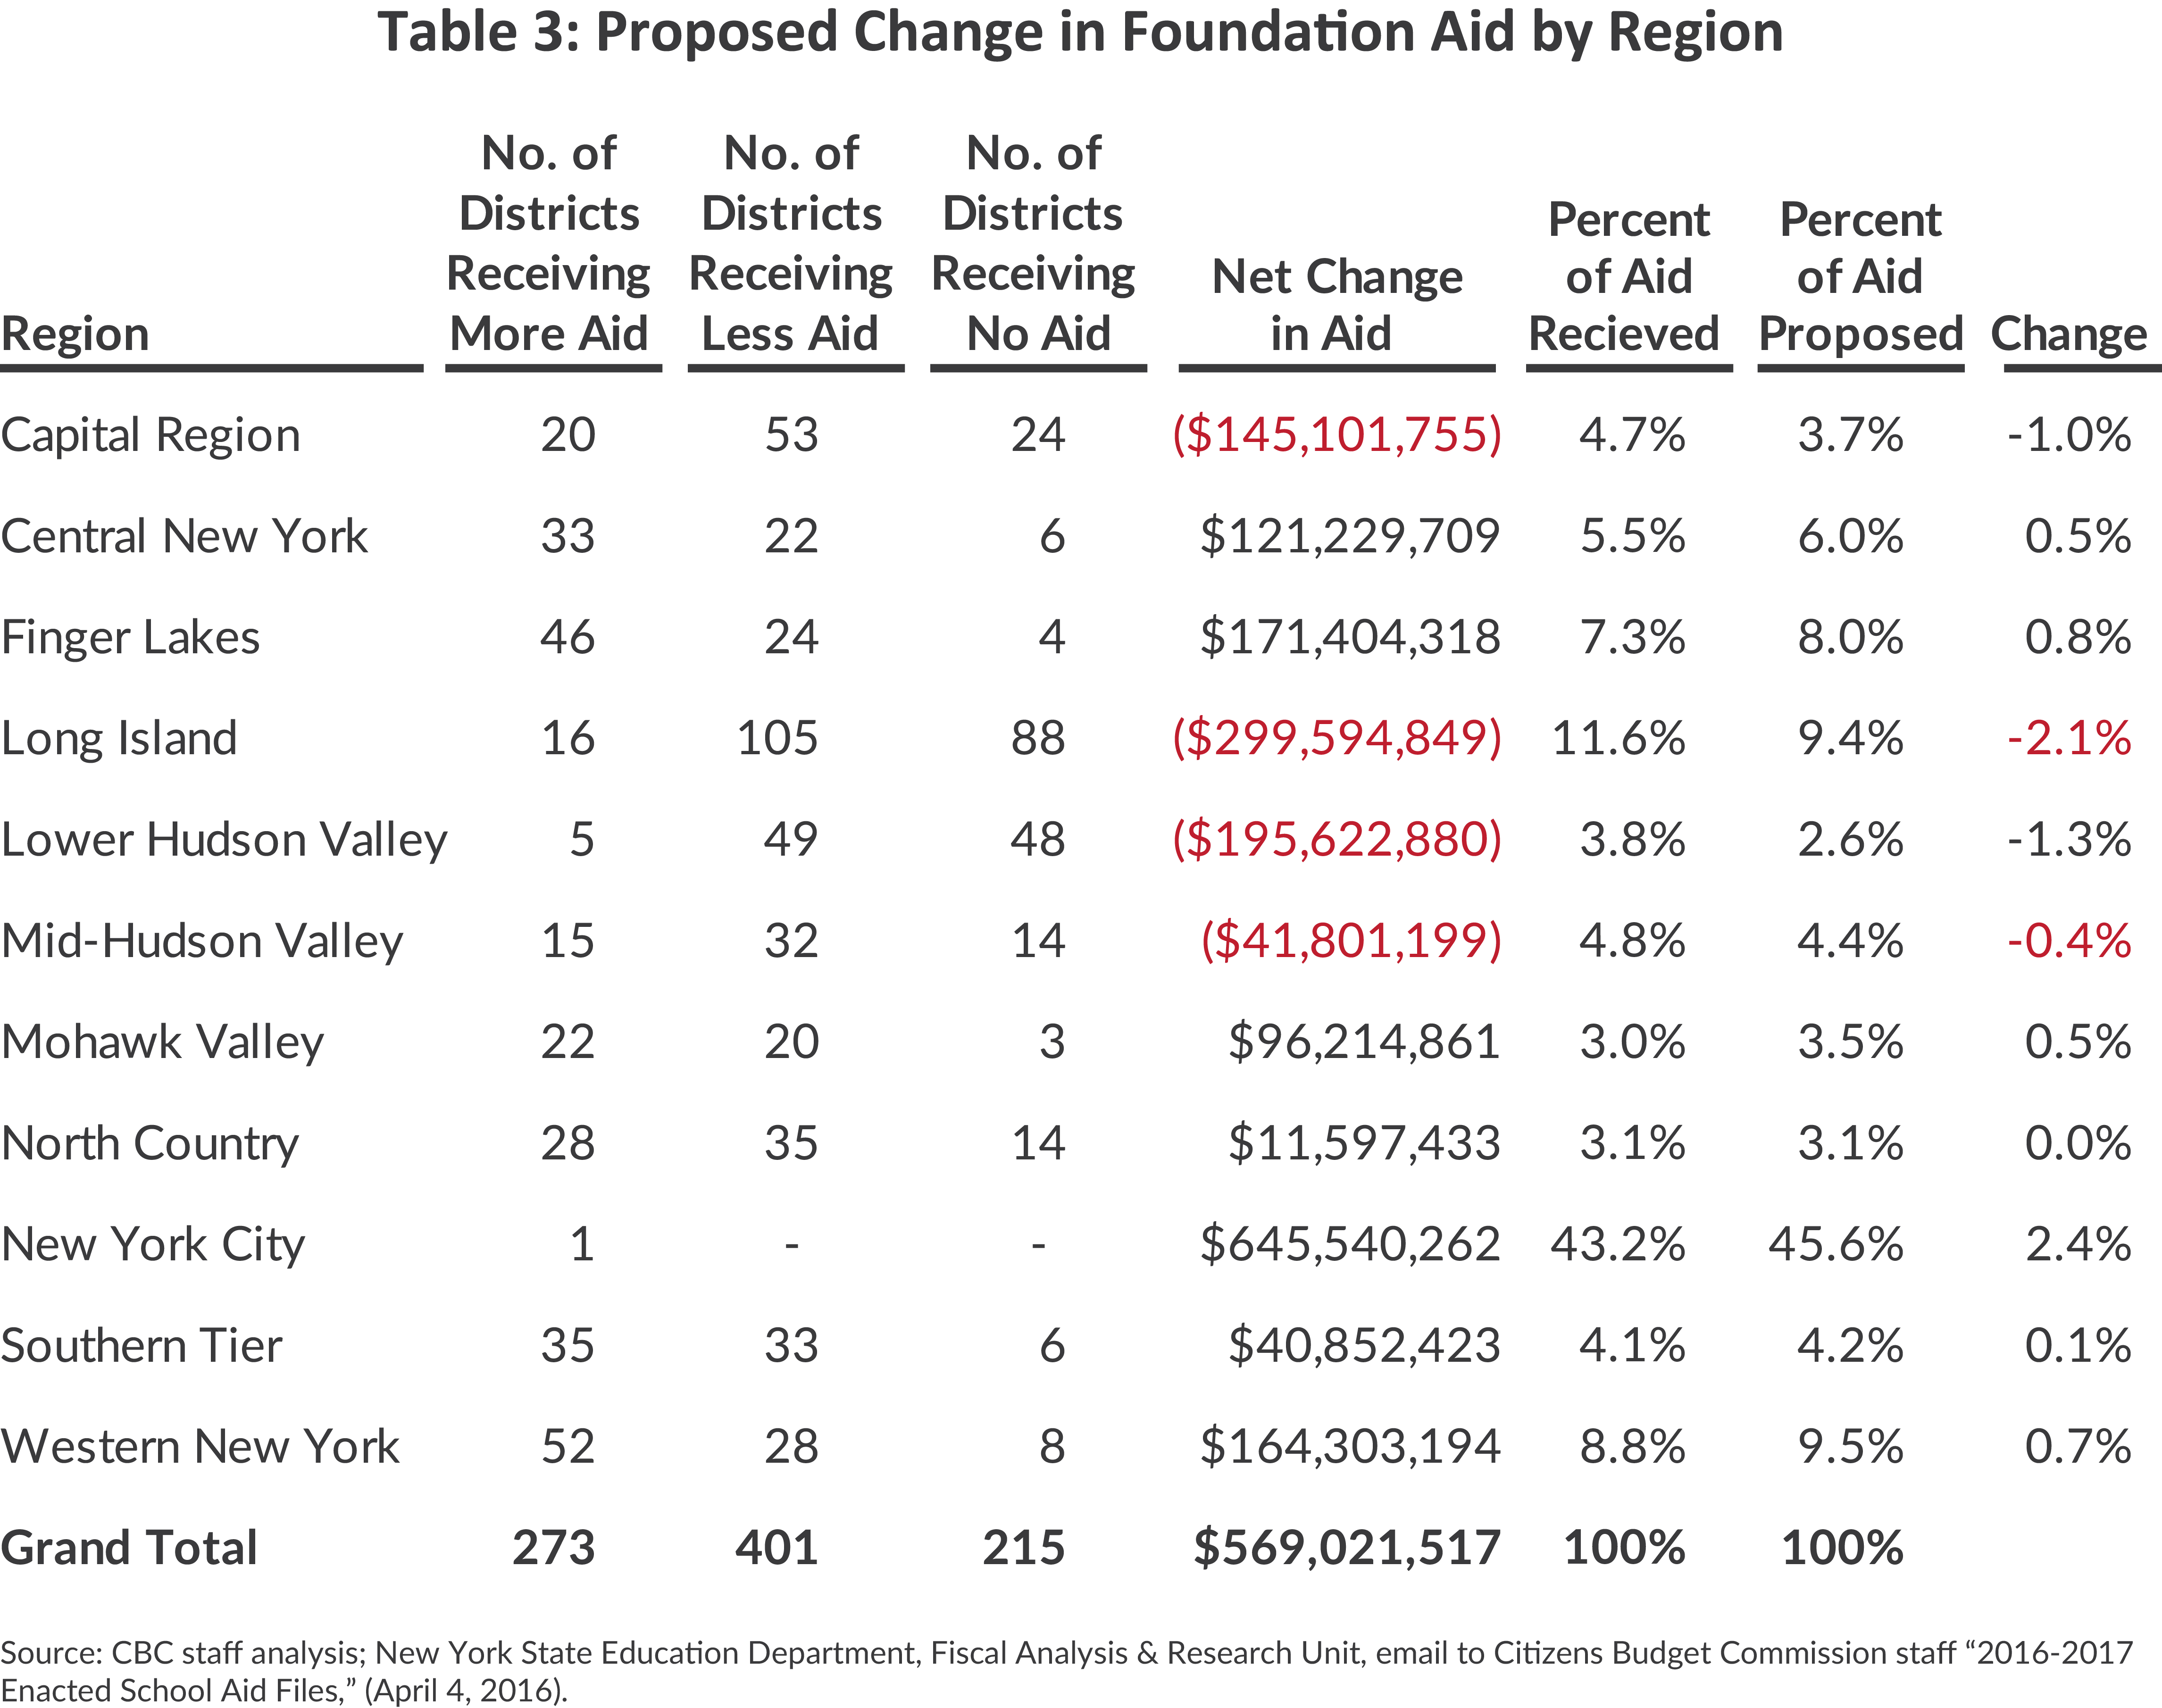 Proposed changes in foundation aid by region